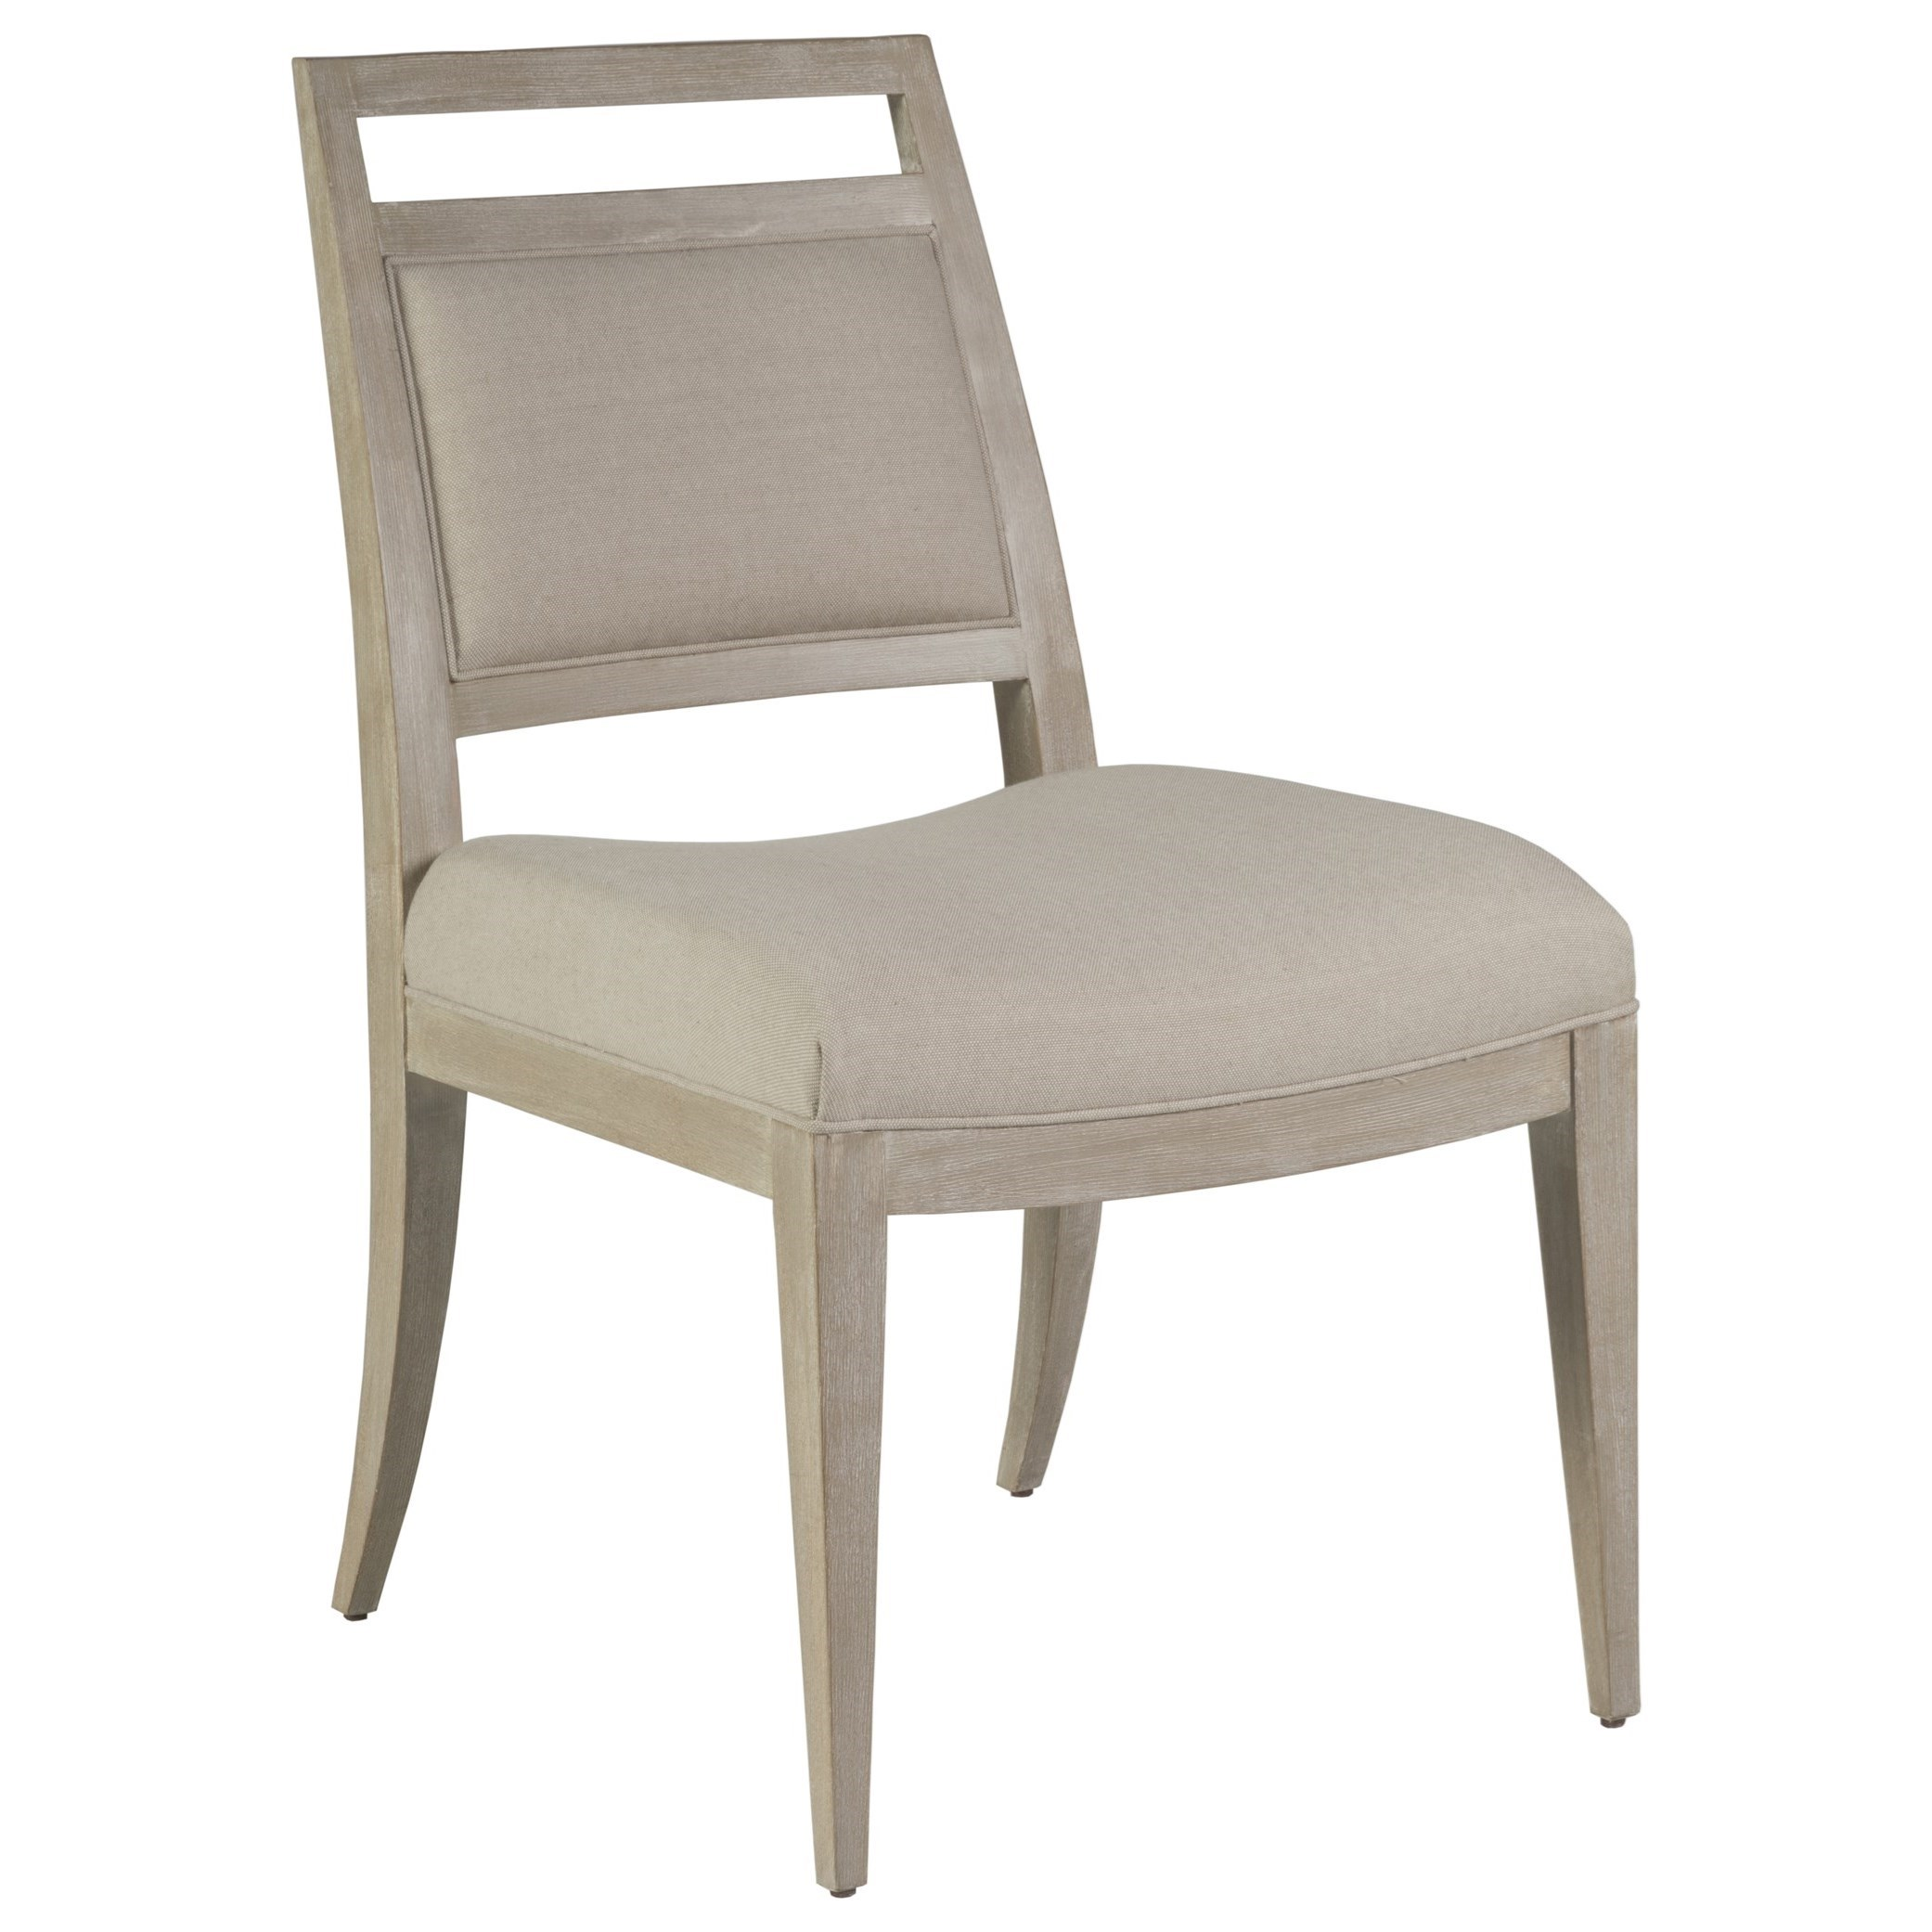 Cohesion Nico Upholstered Side Chair by Artistica at C. S. Wo & Sons Hawaii